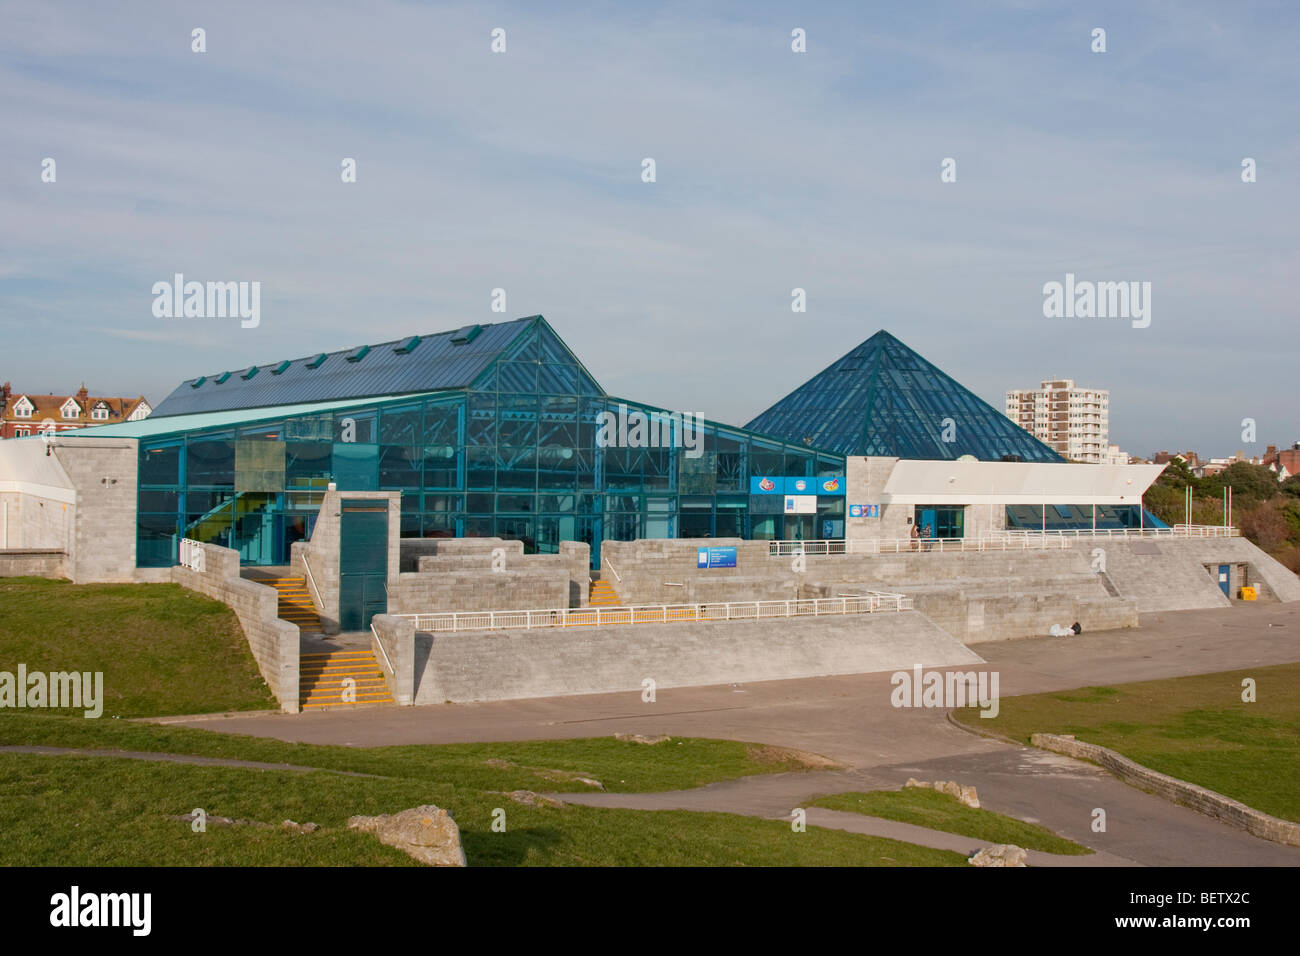 Portsmouth Pyramids Centre in Southsea, England UK. Stock Photo